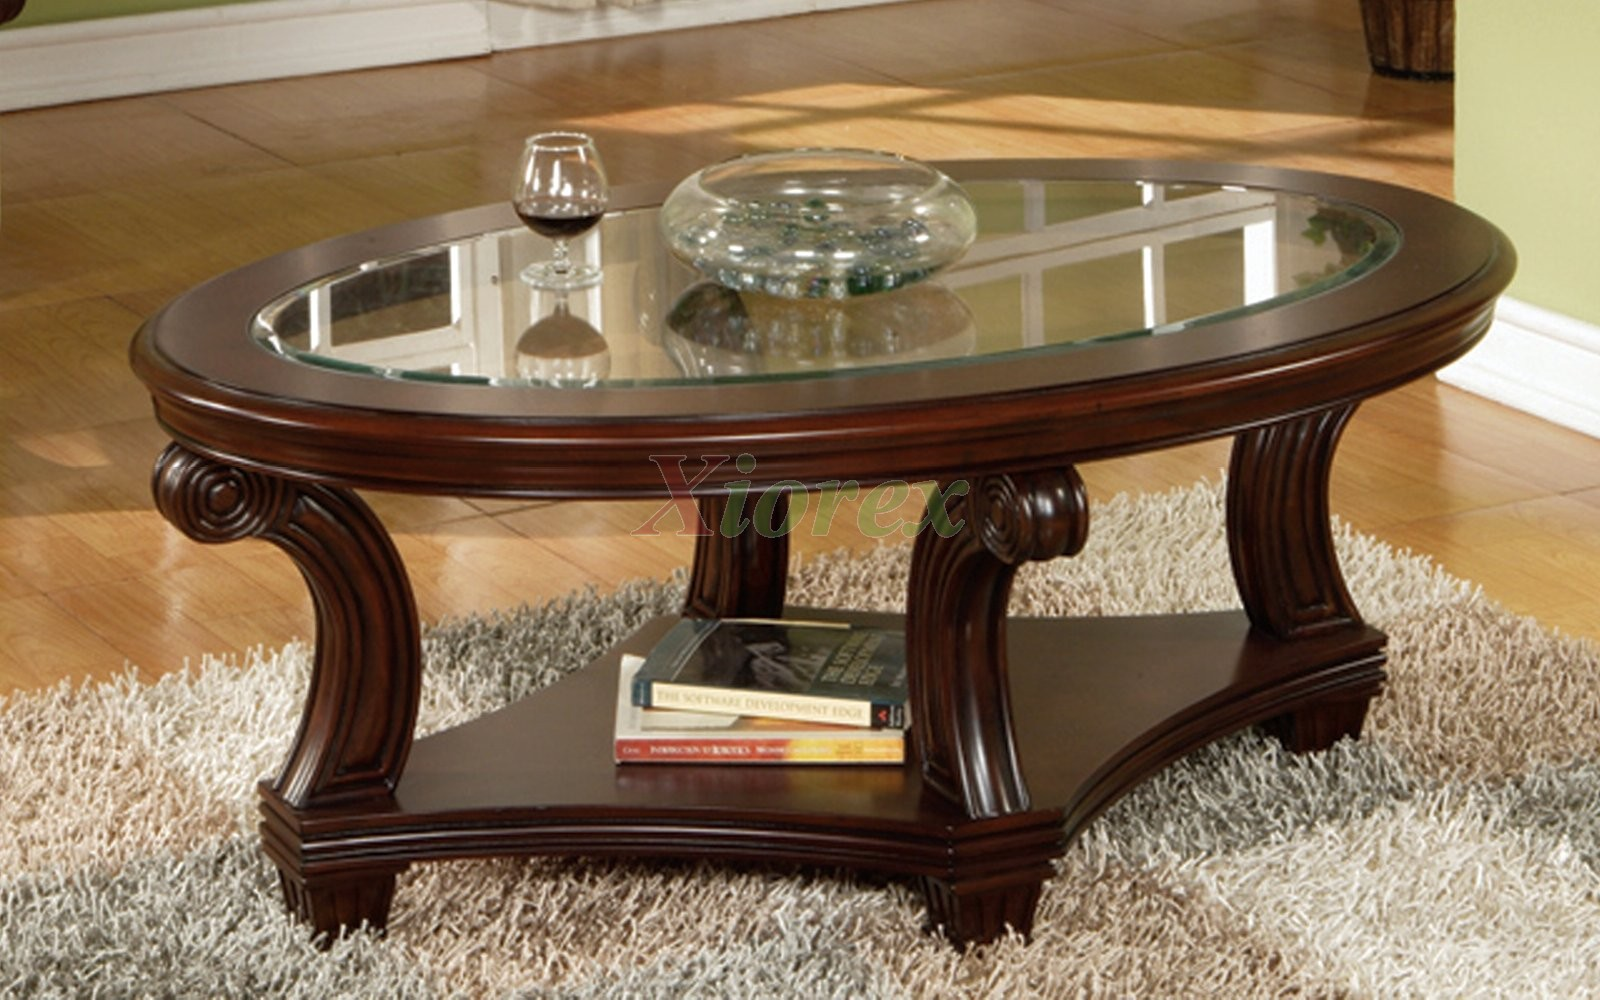 Oval Coffee Table With Glass Top Best Professionally Designed Simple Woodworking Projects For Cub Scouts Good Luck To All Those Who Try (Image 2 of 10)